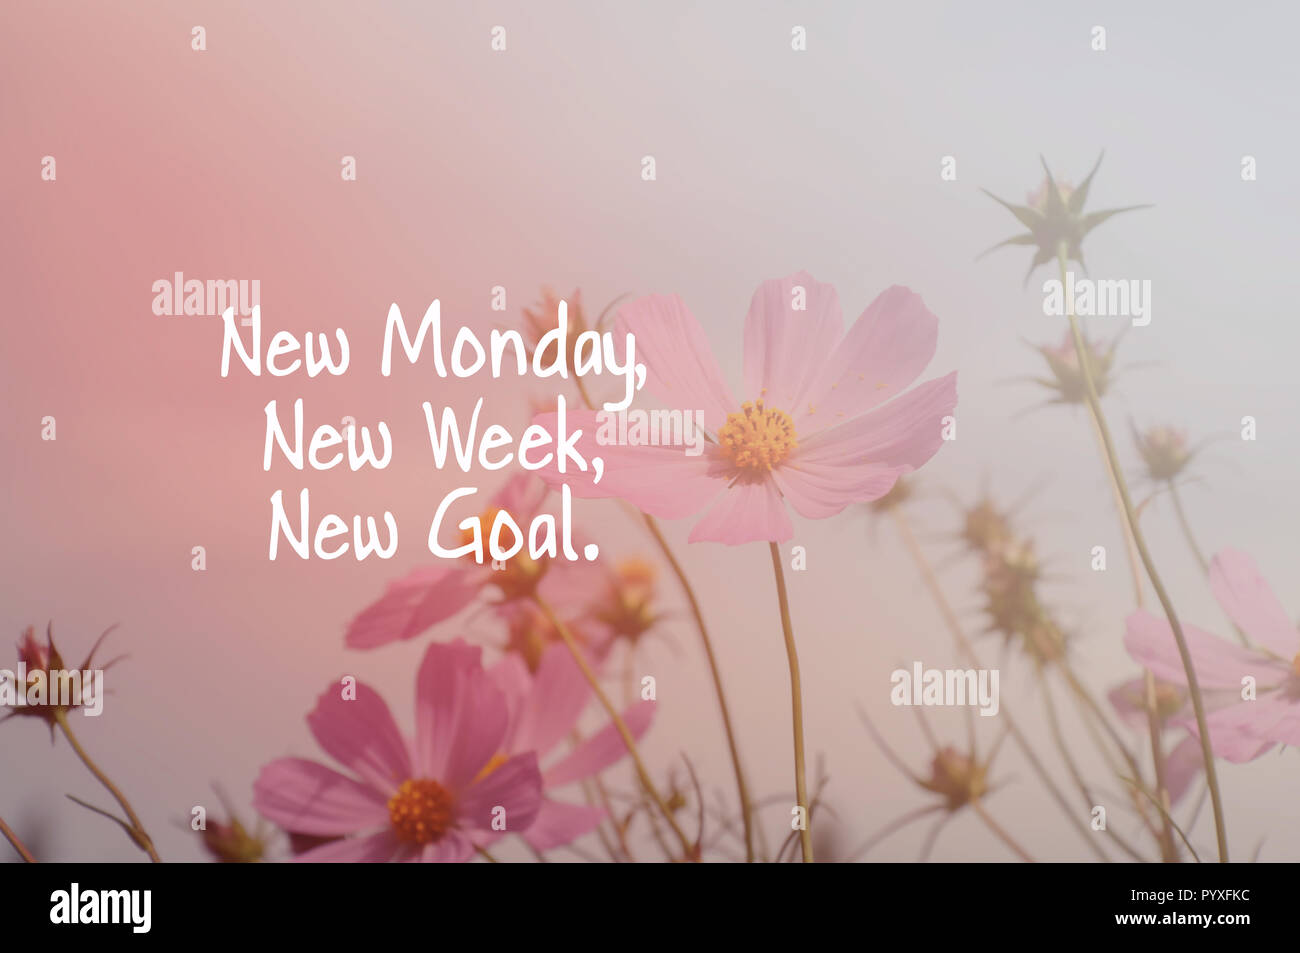 Inspirational quotes - New Monday, new week, new goal Stock ...